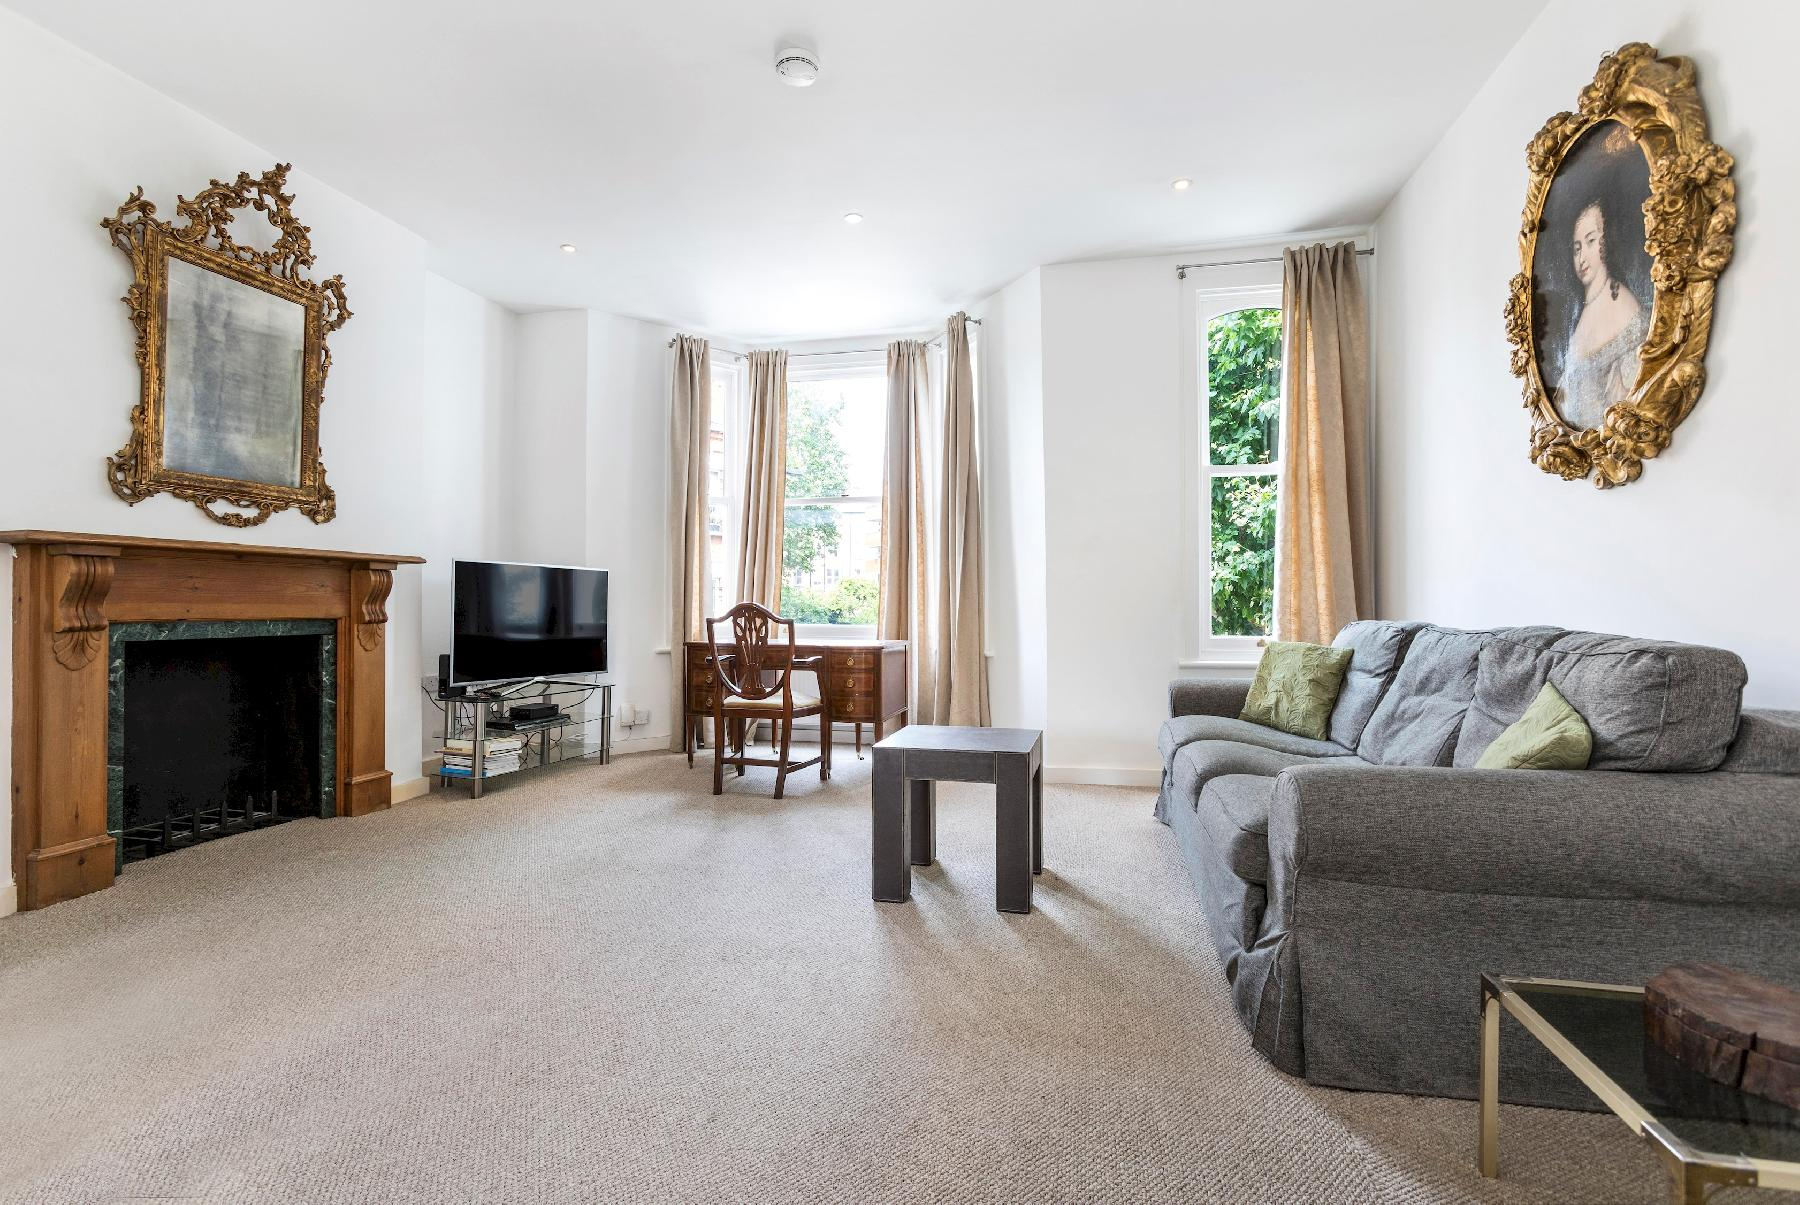 Traditional Chelsea Maisonette with 2 bedrooms and wonderful views of the river